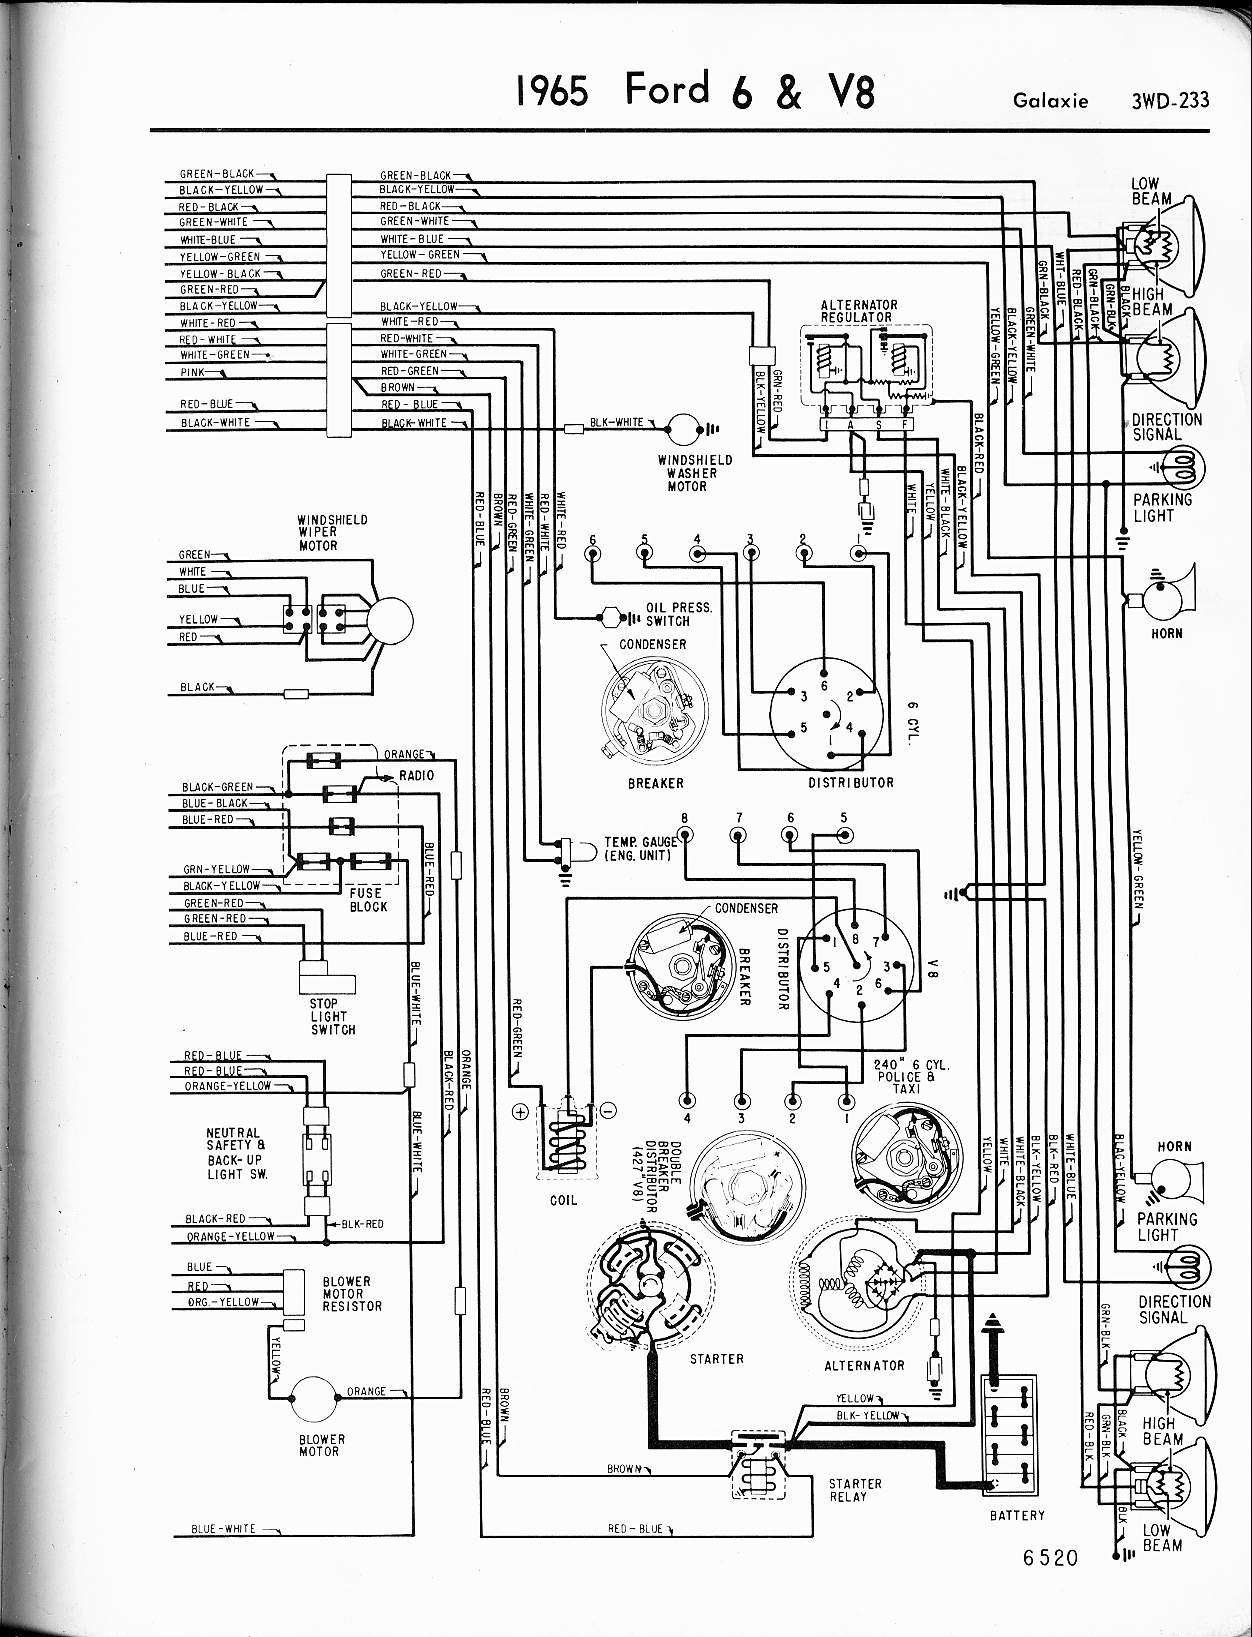 ford wiring basics read all wiring diagram Ford Wire Diagrams